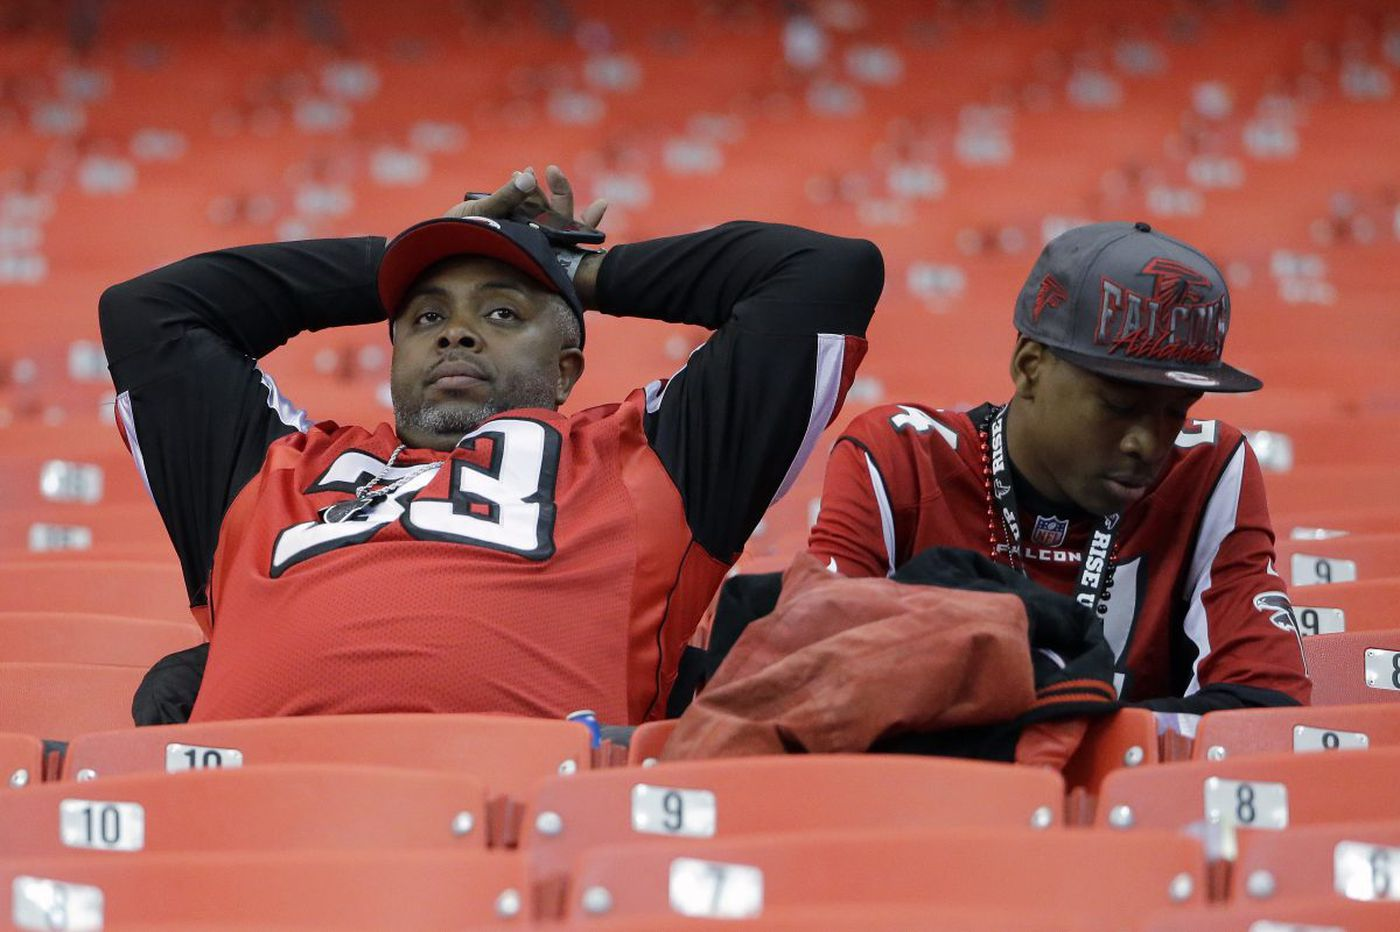 Atlanta fans know Philly's pain, and then some   Bob Brookover